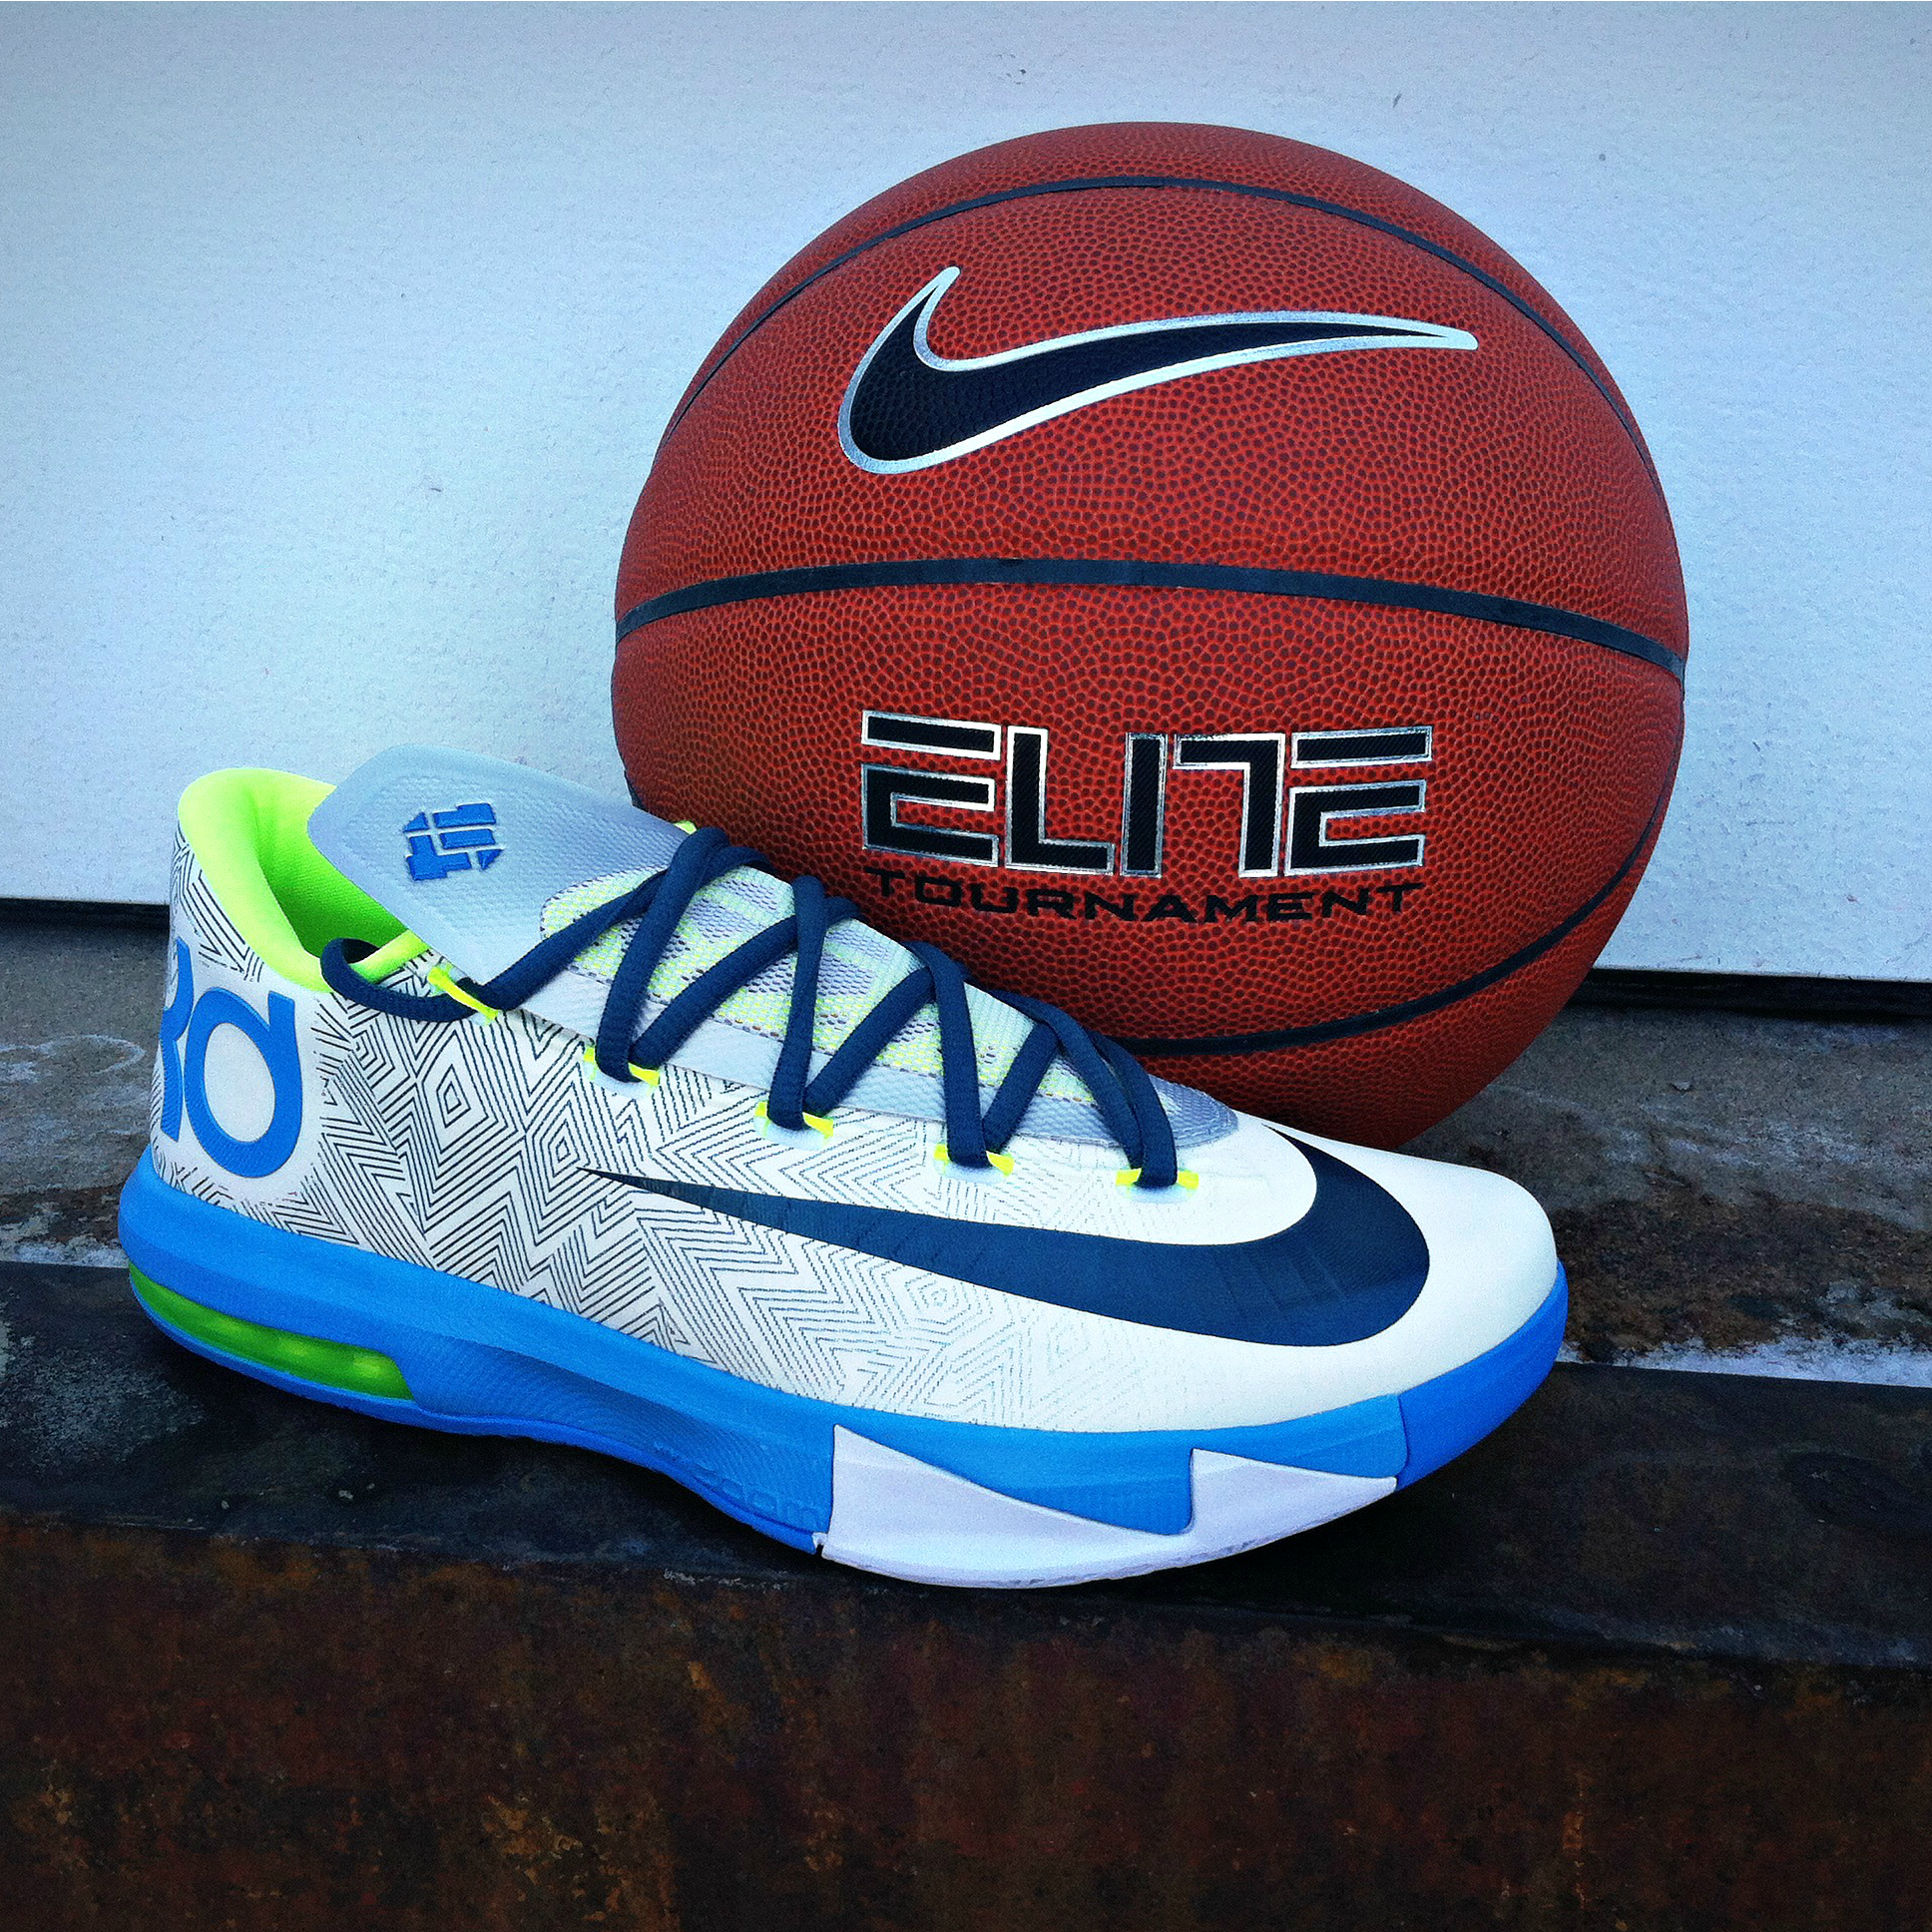 Nike KD VI takes on a second